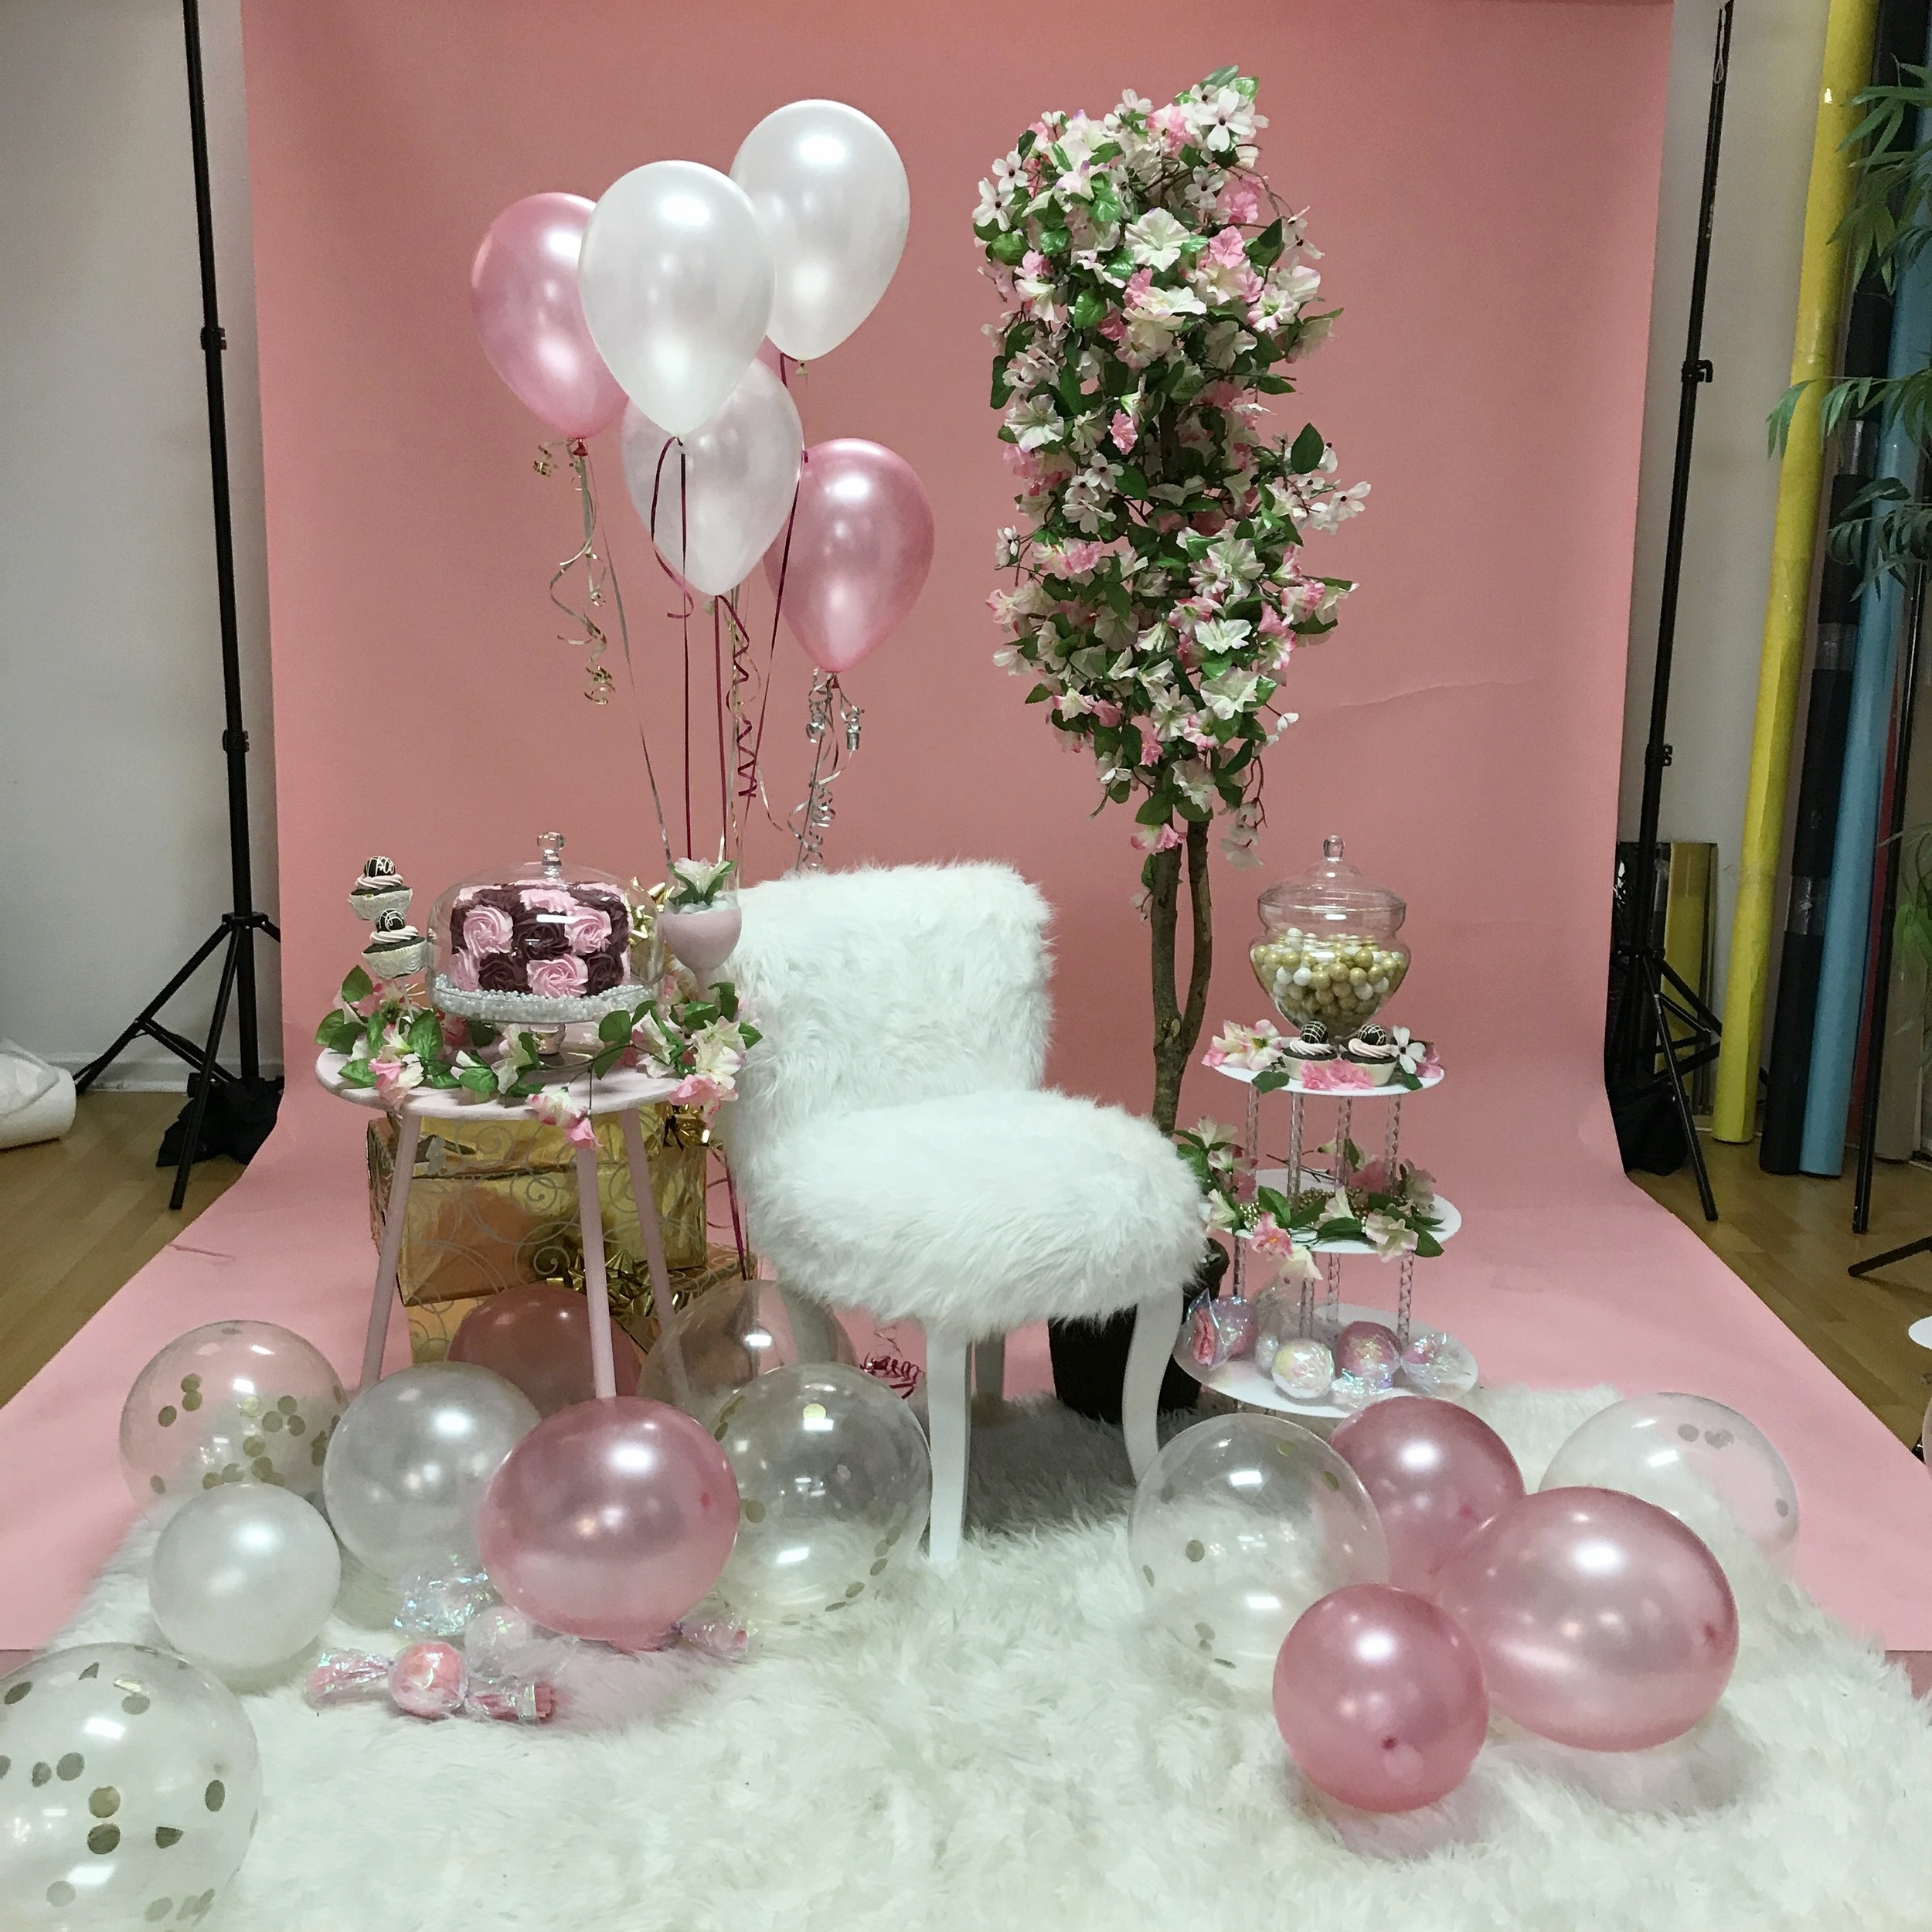 Scene Design Is Example And Is NOT LIMITED To Color Scheme Presented  Client Provided Pre-Filled Helium Rubber Balloons (floor balloons provide by photographer)